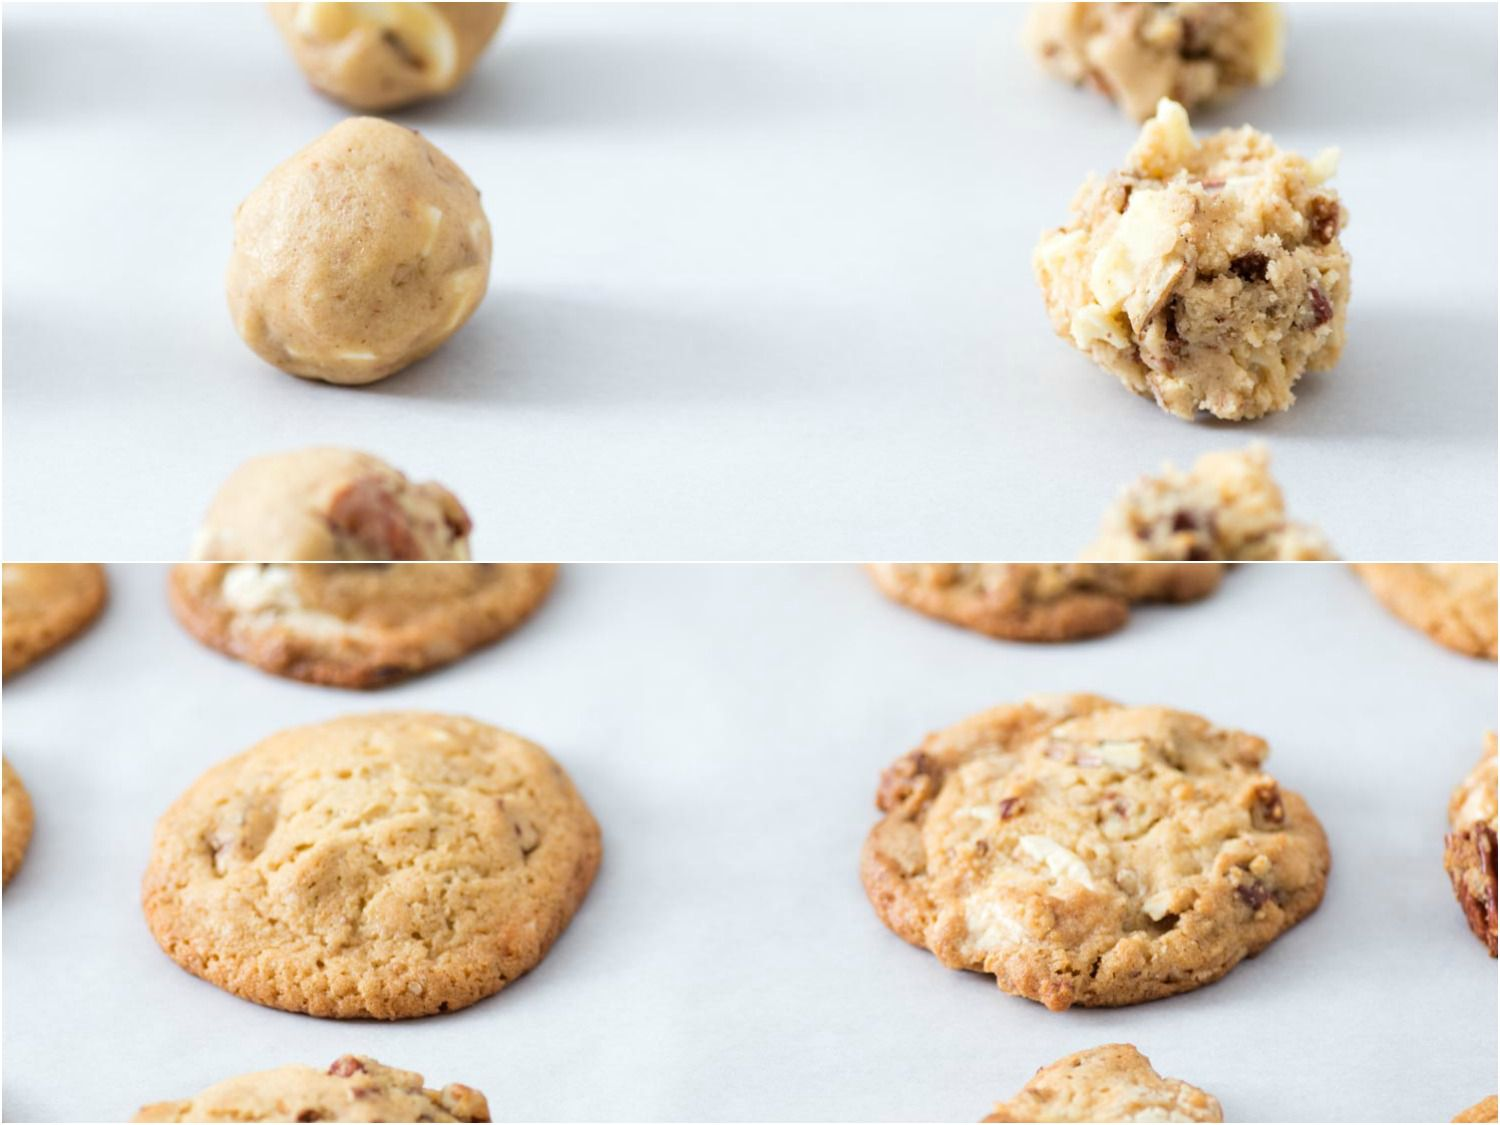 20170125-malted-white-chocolate-butterscotch-pecan-cookies-vicky-wasik-collage4.jpg